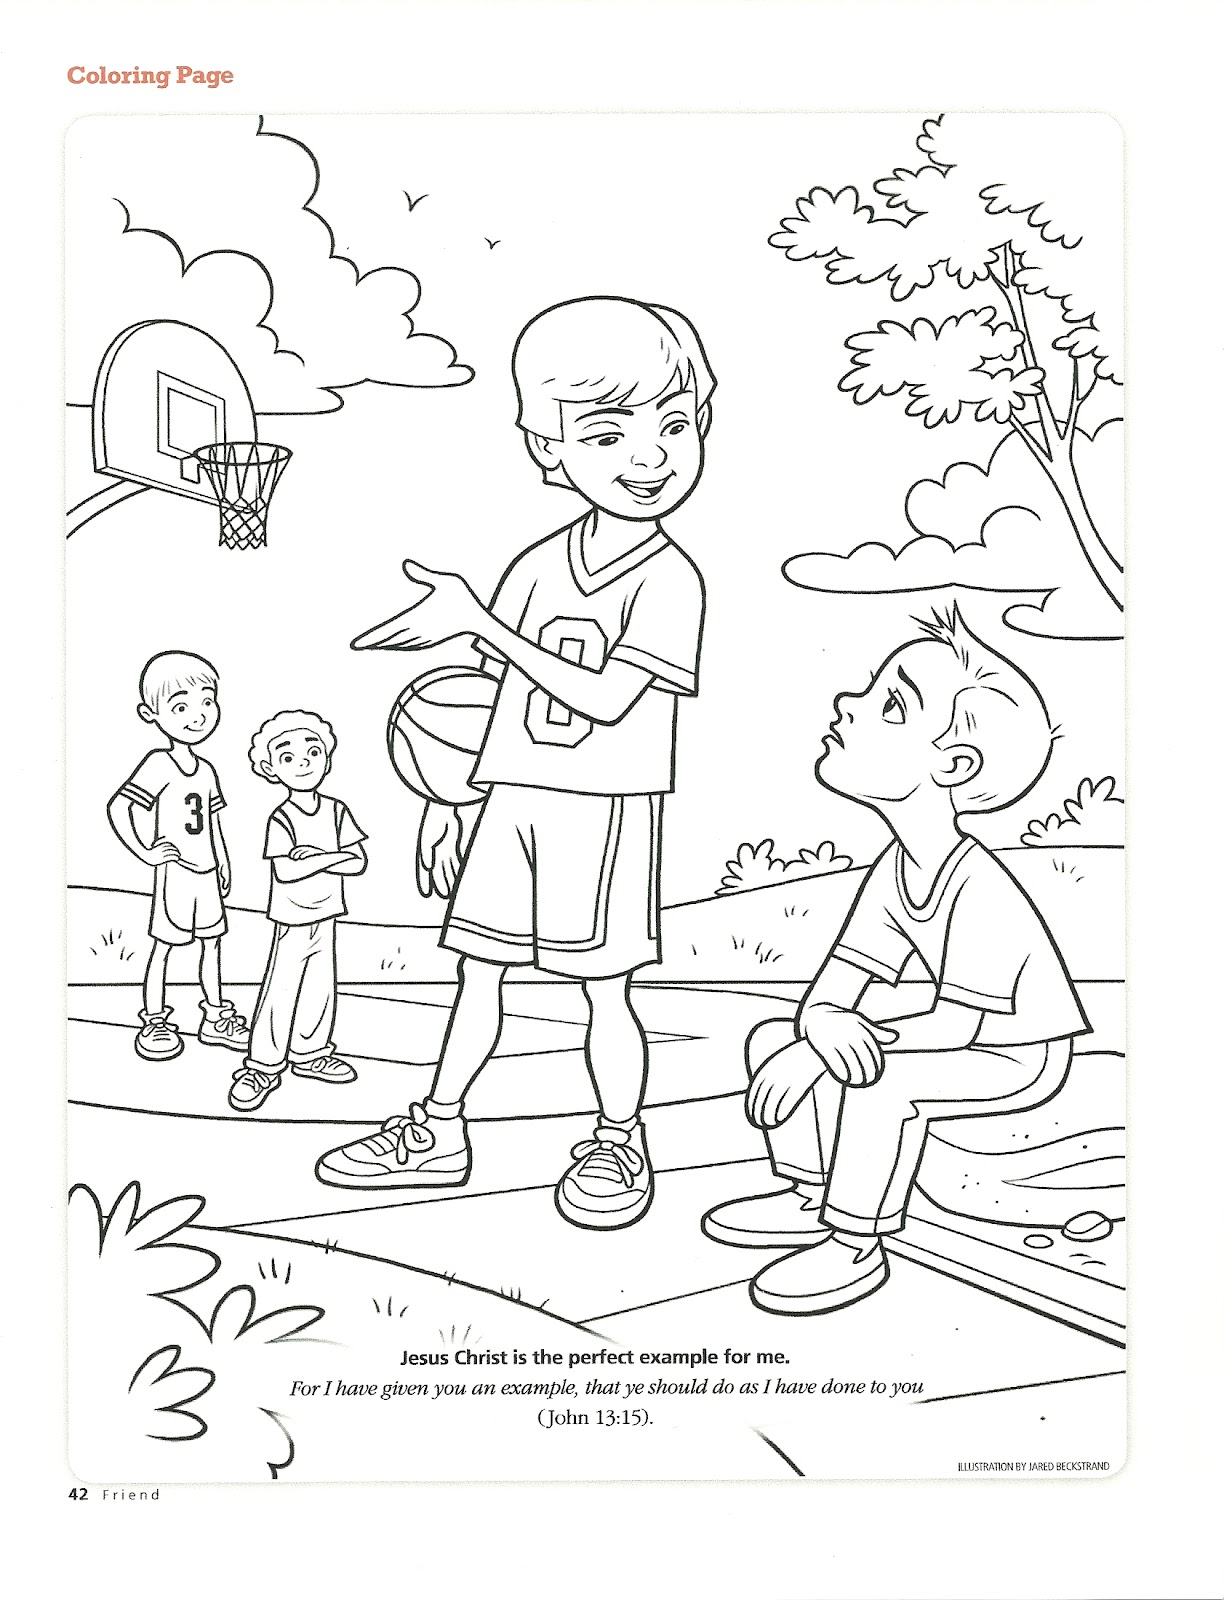 Jane Goodall Coloring Page At Getcolorings